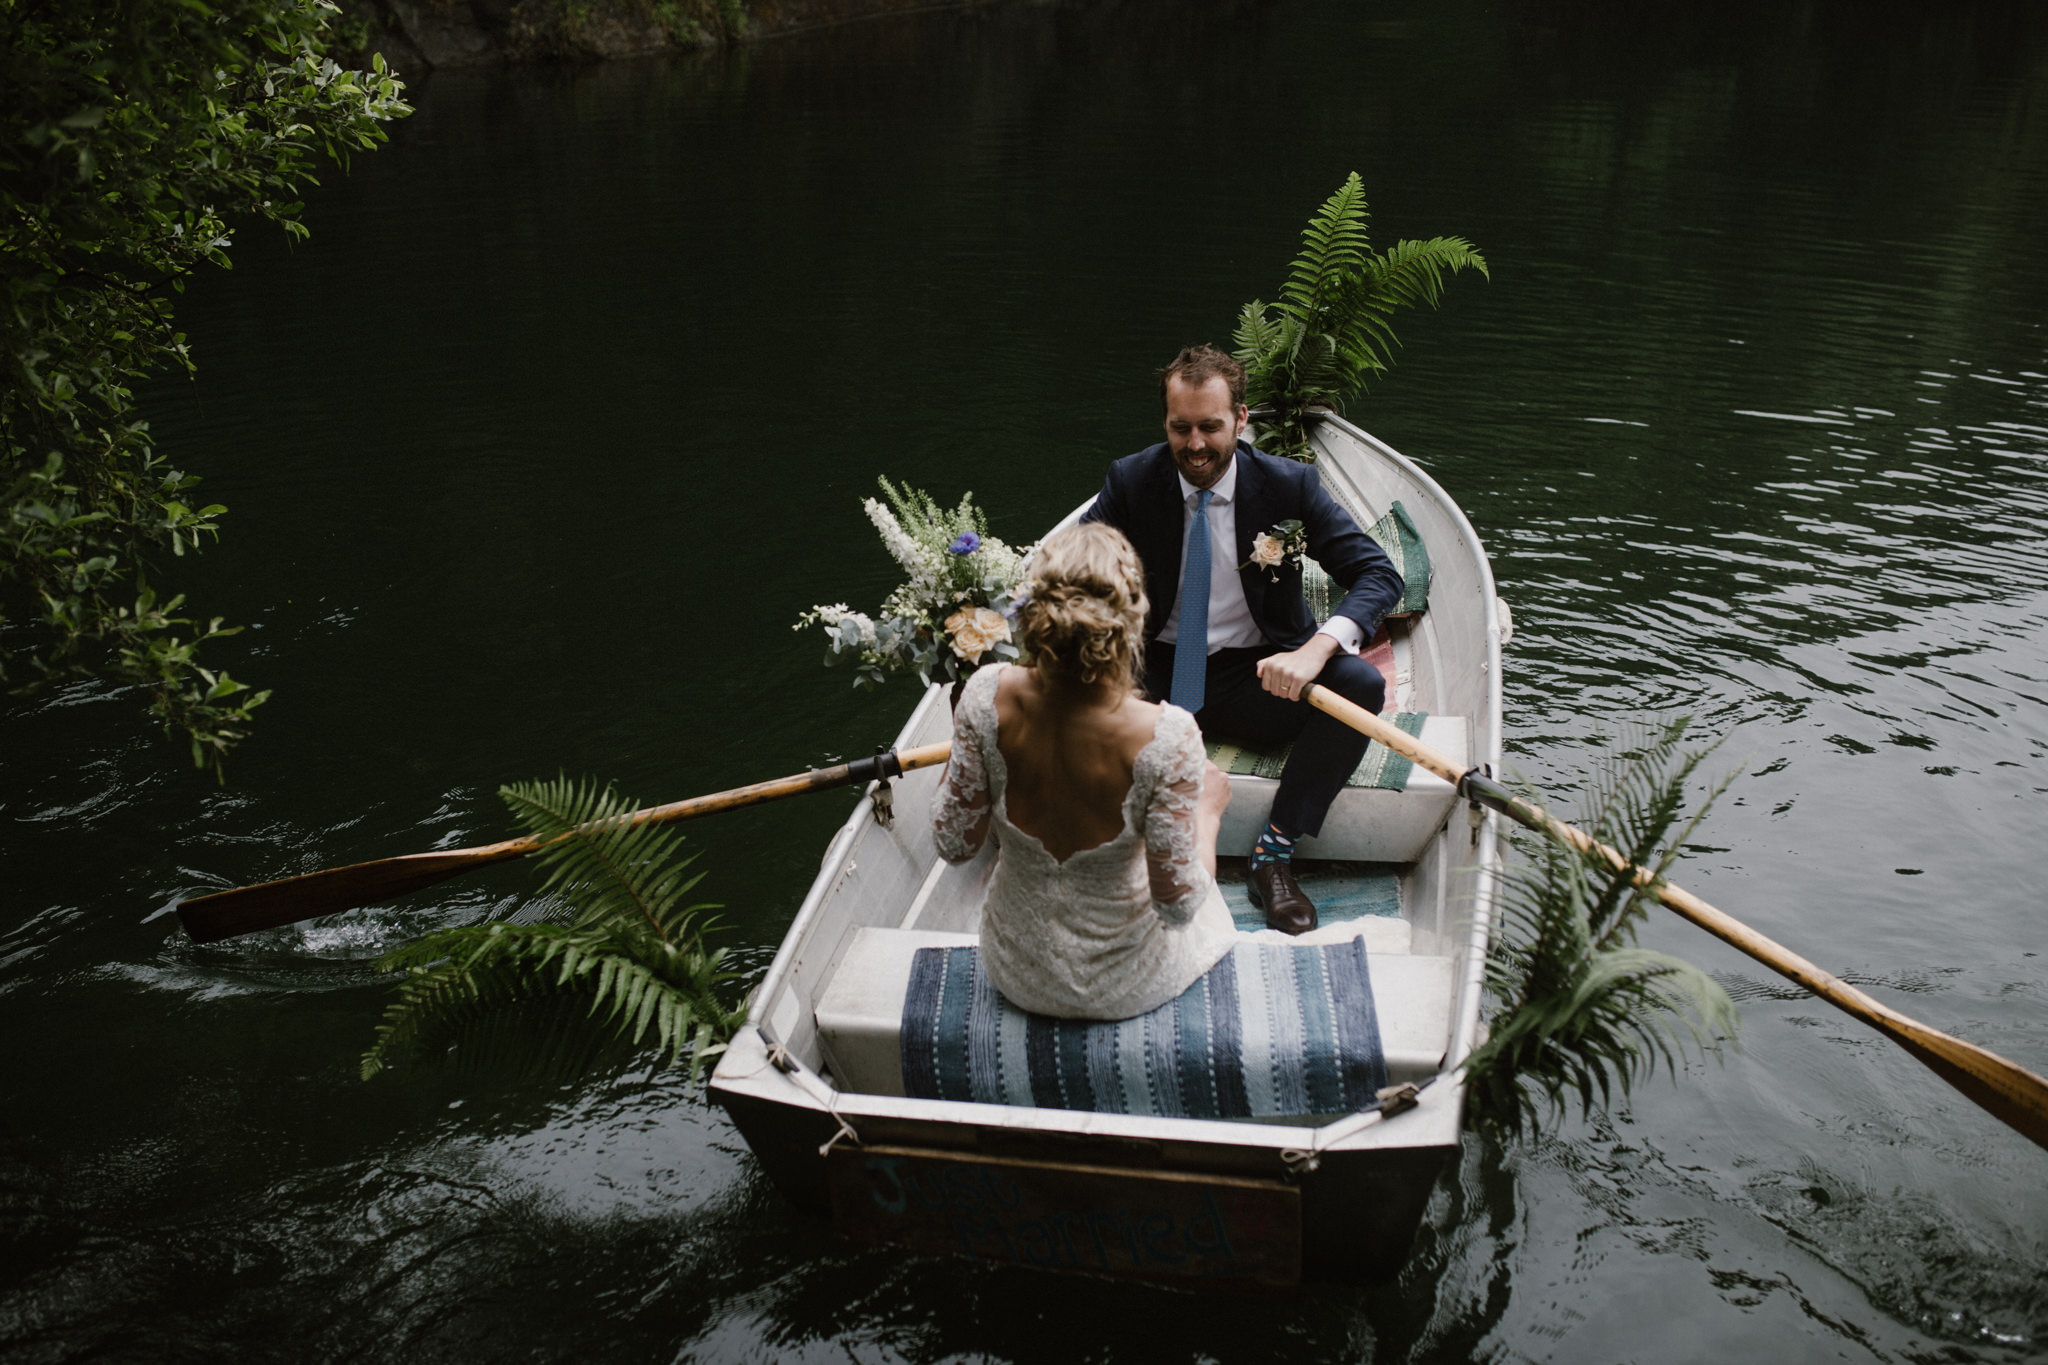 River and Fern - UK wedding photographer - cornwall tipi wedding